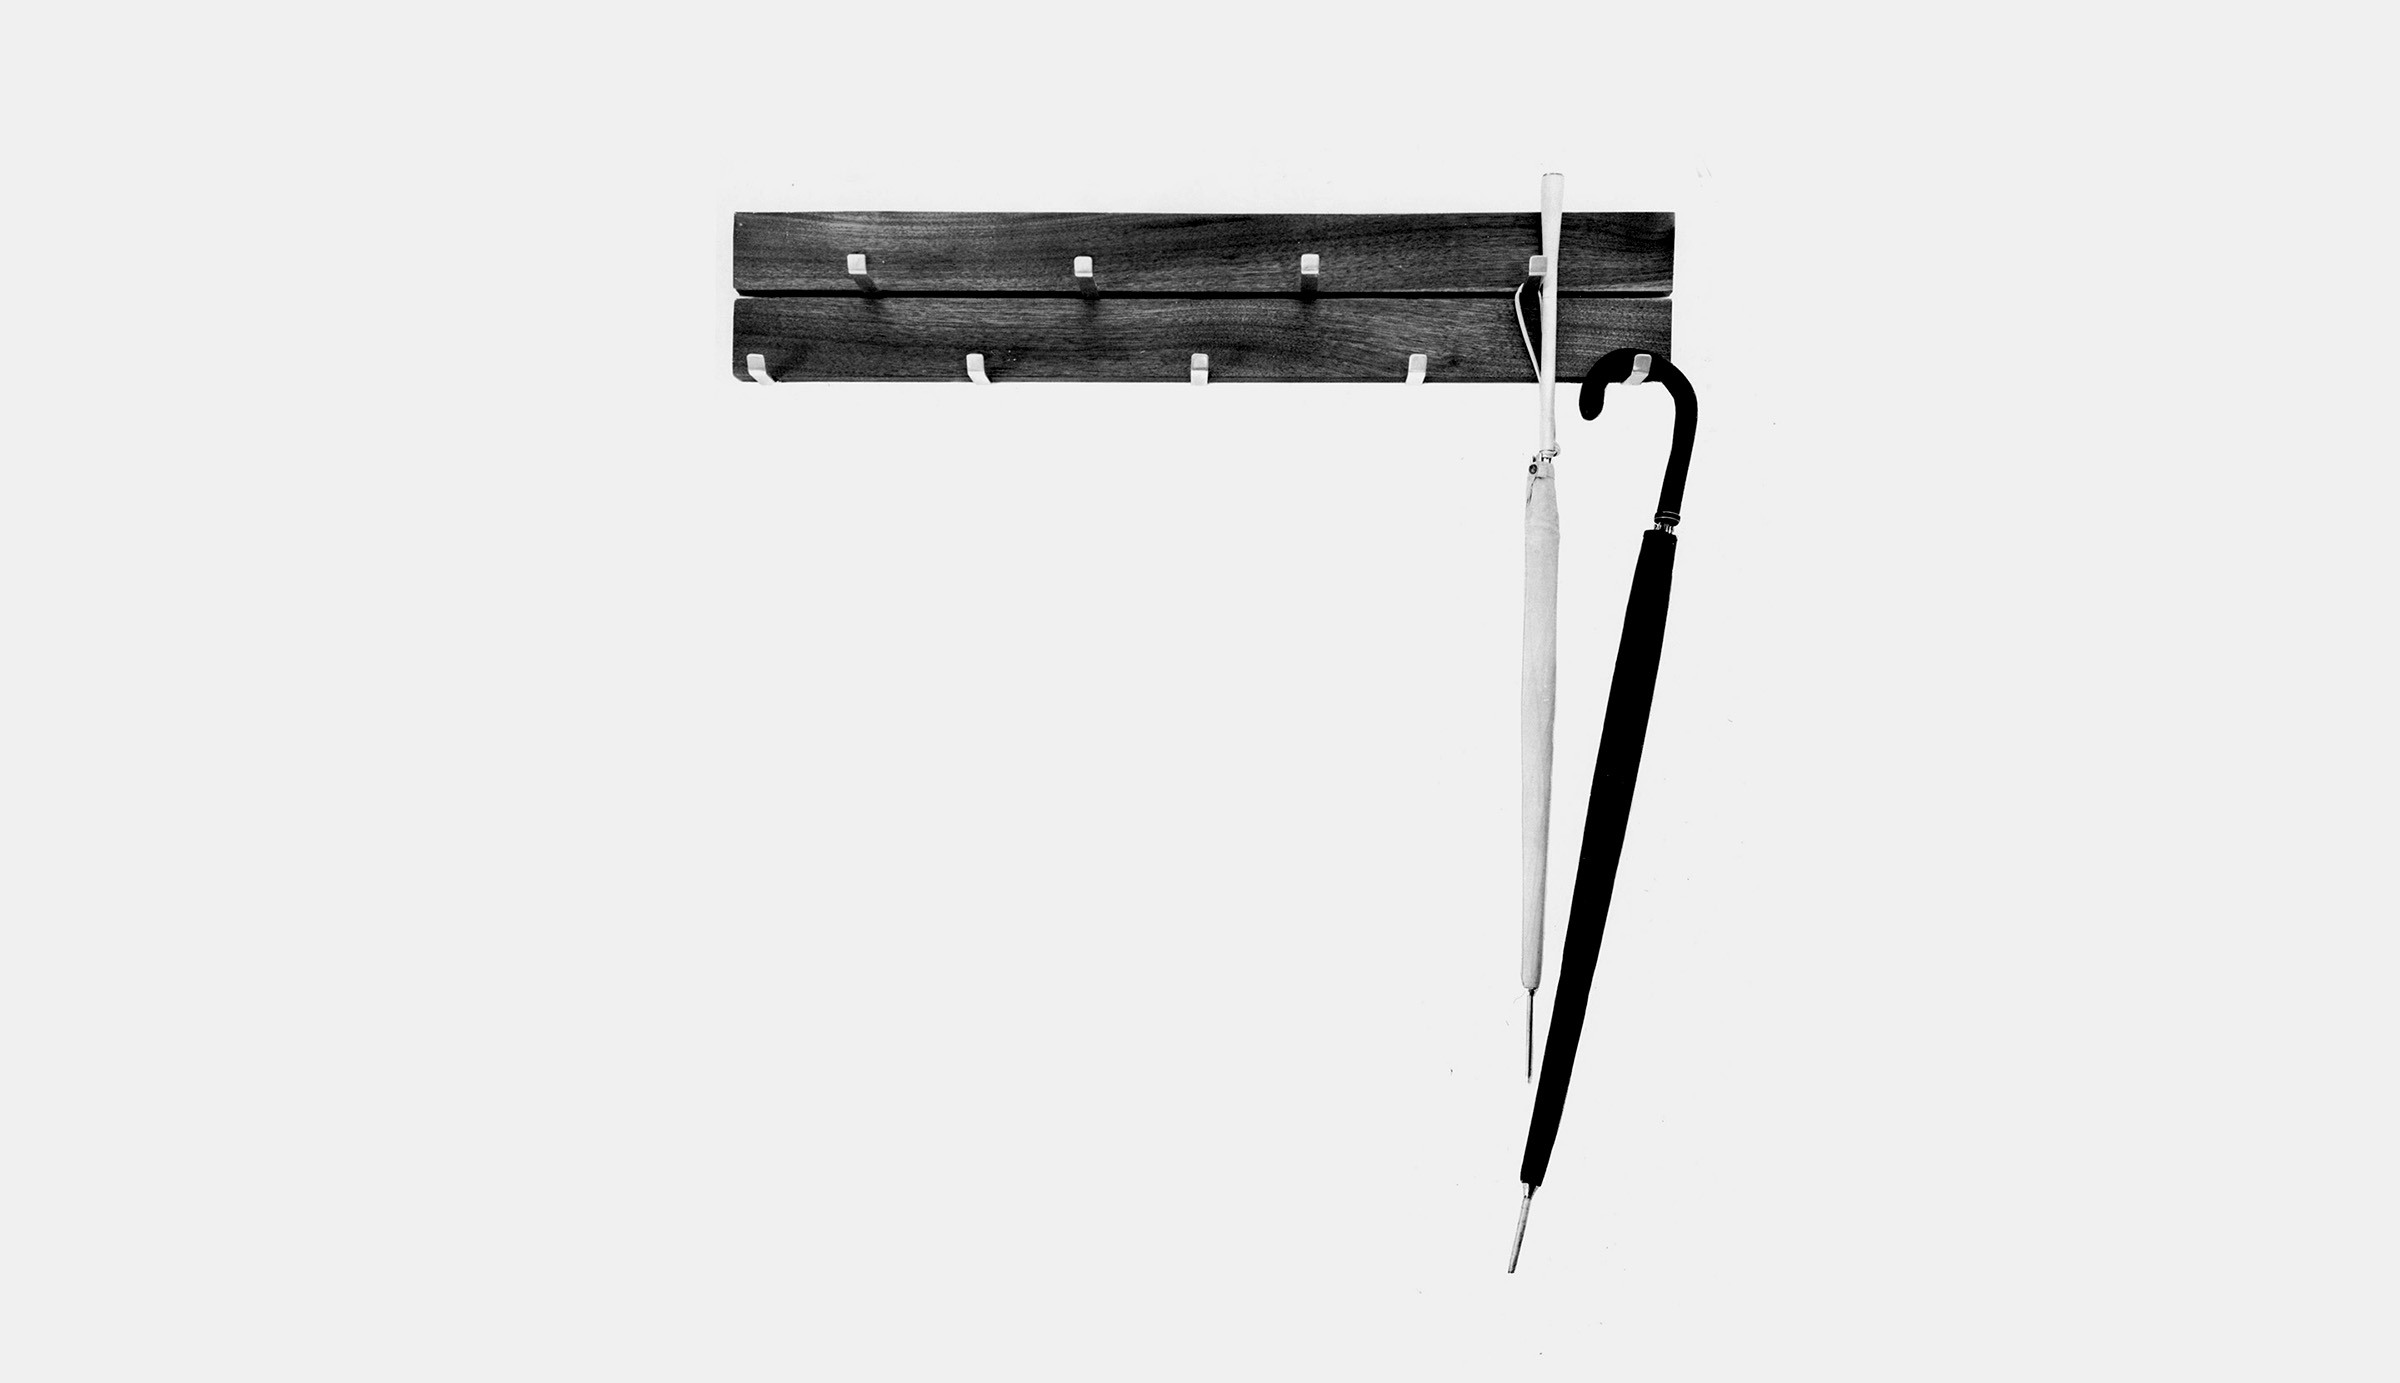 BodilKjaer_Coatrack_Detail